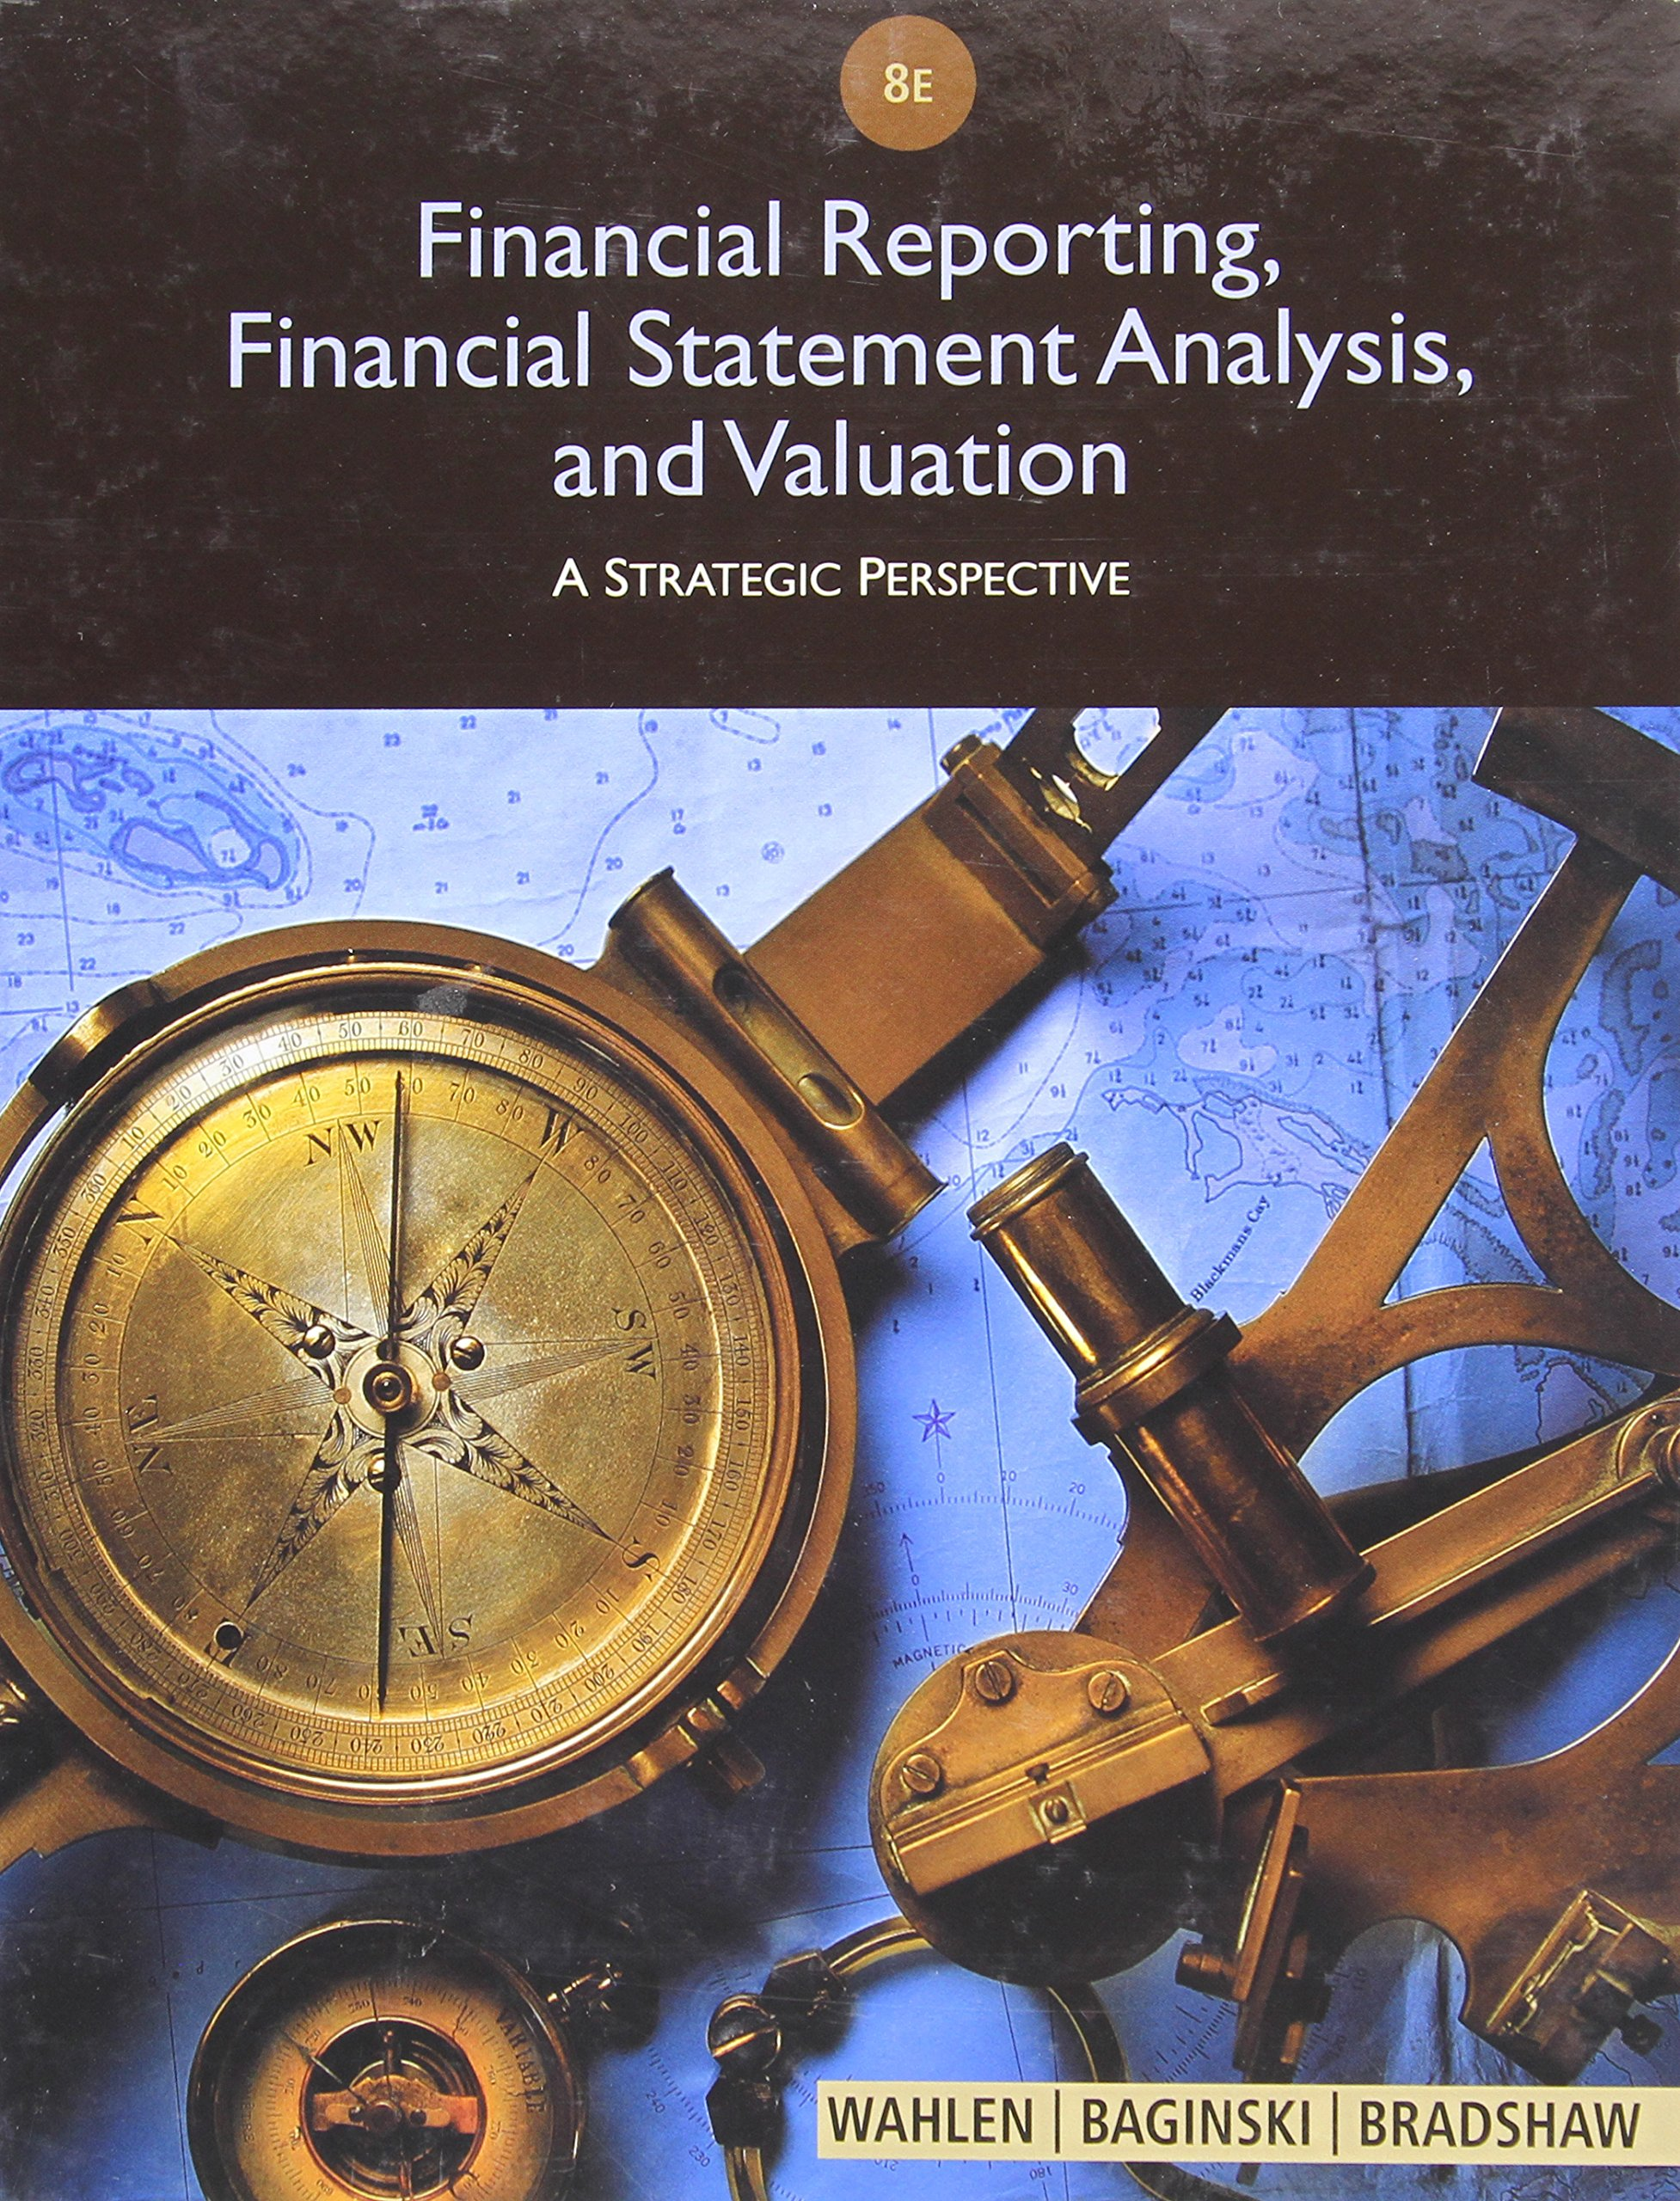 Financial Reporting Financial Statement Analysis and Valuation 8th Edition By Wahlen, Baginski, Bradshaw - Solution Manual